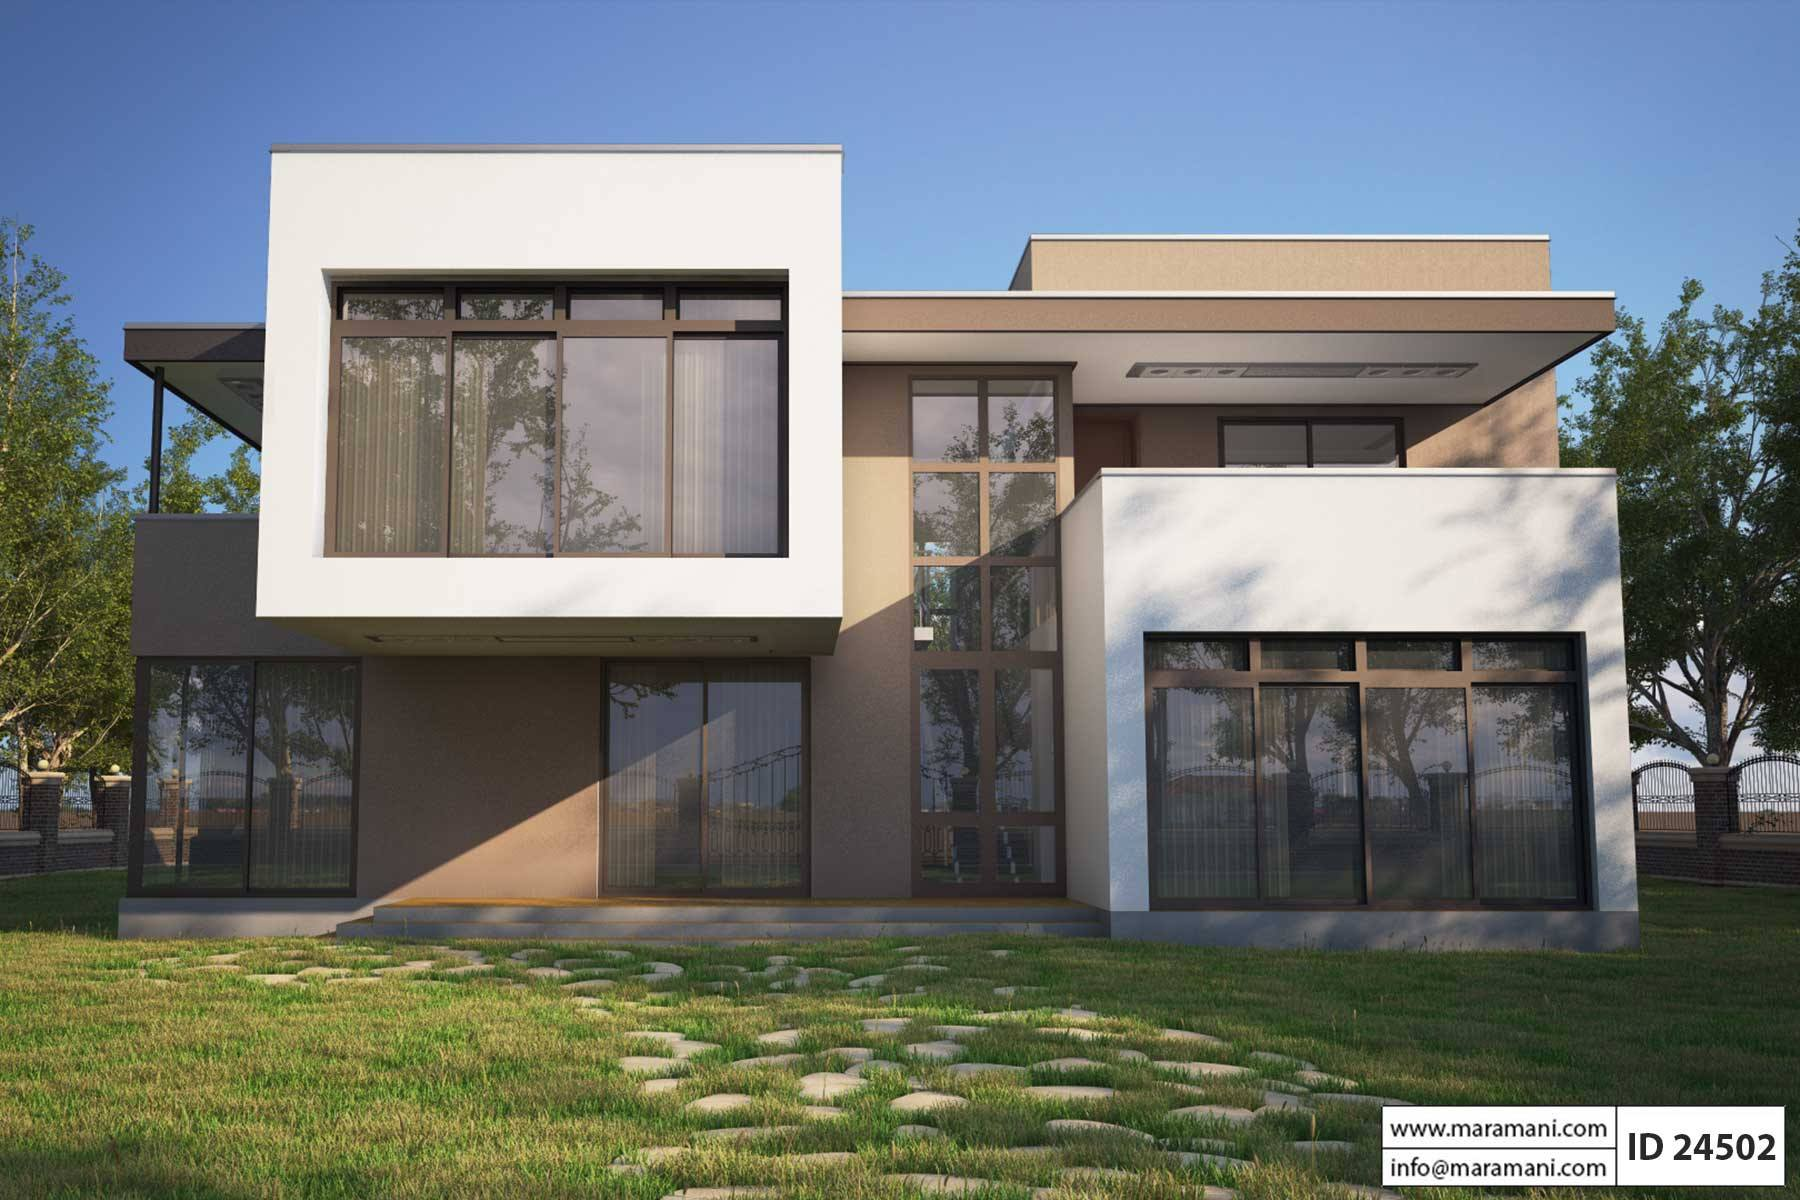 Four bedroom modern house design id 24502 house plans maramani